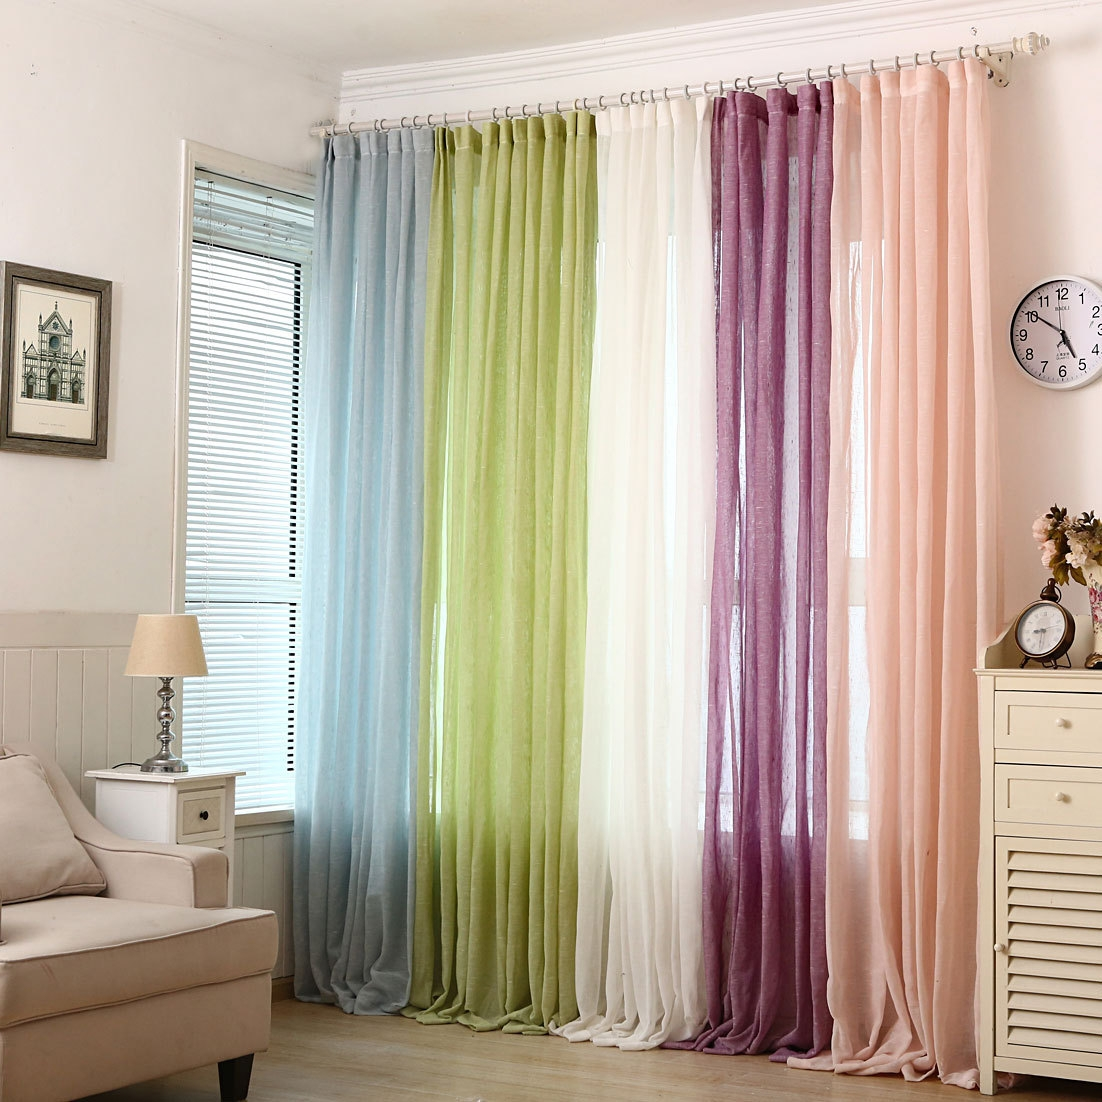 Online Buy Wholesale Linen Gauze Curtains From China Linen Gauze With Regard To Linen Gauze Curtains (Image 9 of 15)